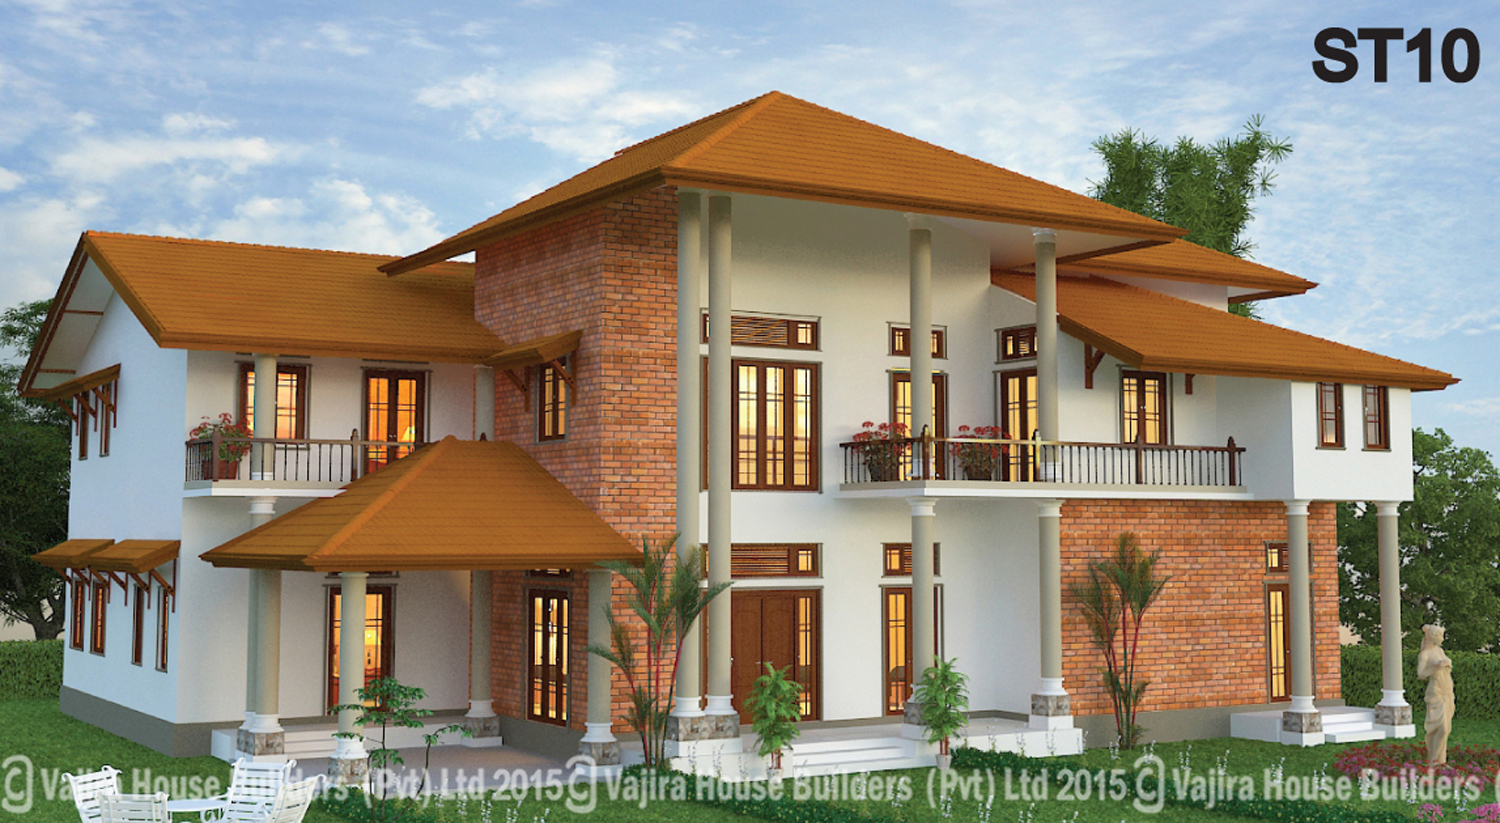 Vajira house plan in sri lanka for Home design images